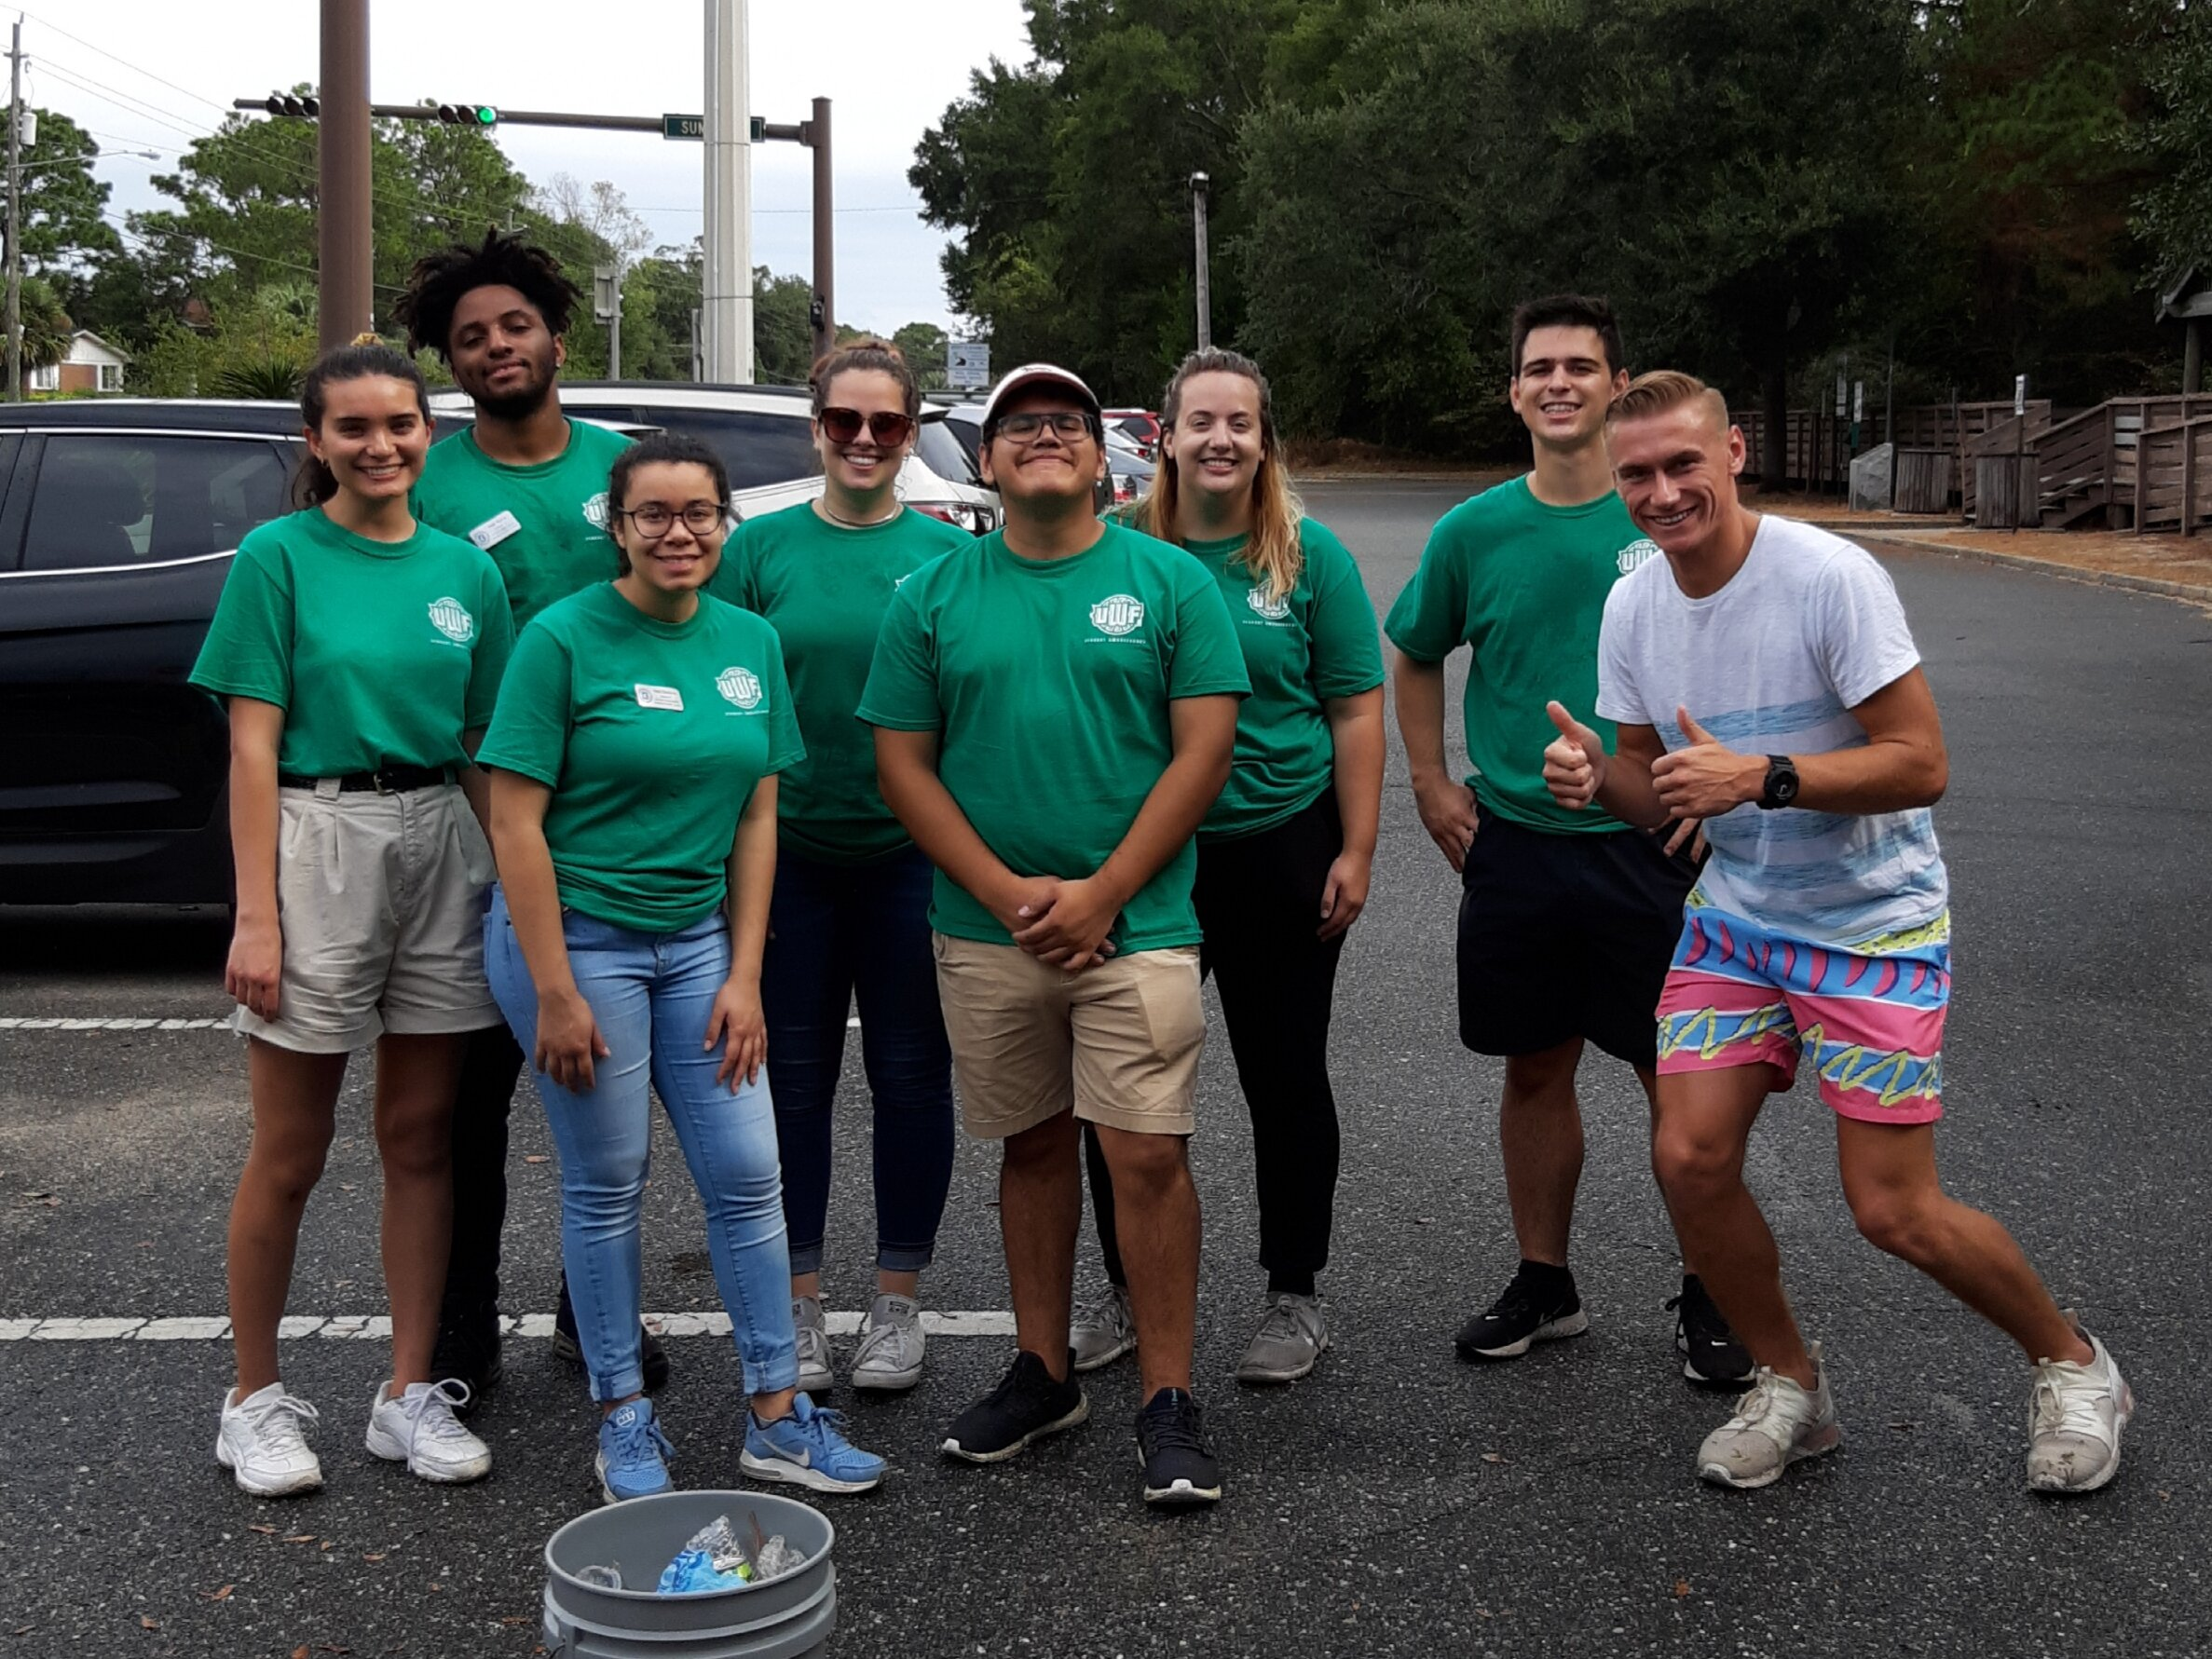 - Volunteers from UWF Student Ambassadors and Central Credit Union helped pick up 212 lbs of trash at Bay Bluffs Park. Nine more people at Chimney Park collected a furtherLast month picked up numerous plastic sleeves for Pensacola News Journals. A further 11 were found along Scenic Hwy